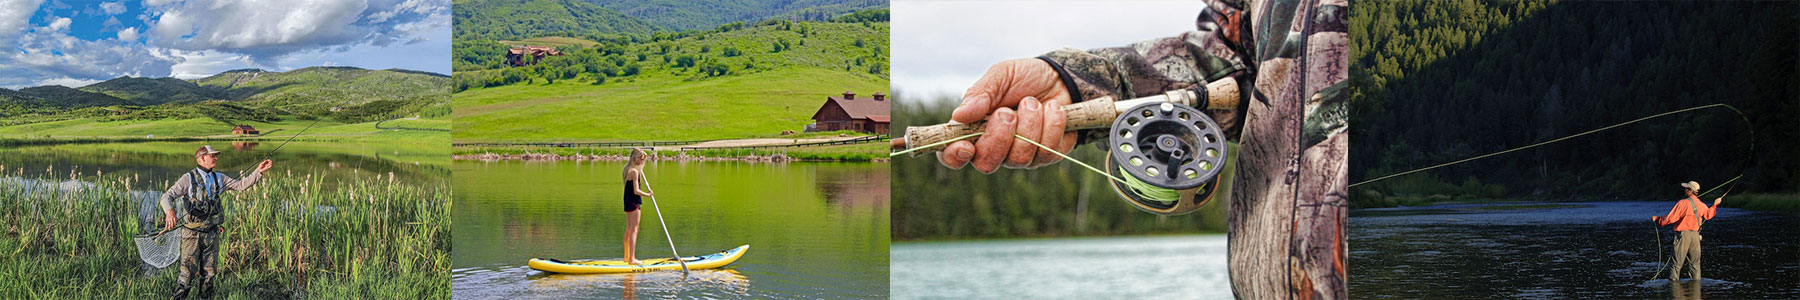 fishing water reel - Fly Fishing